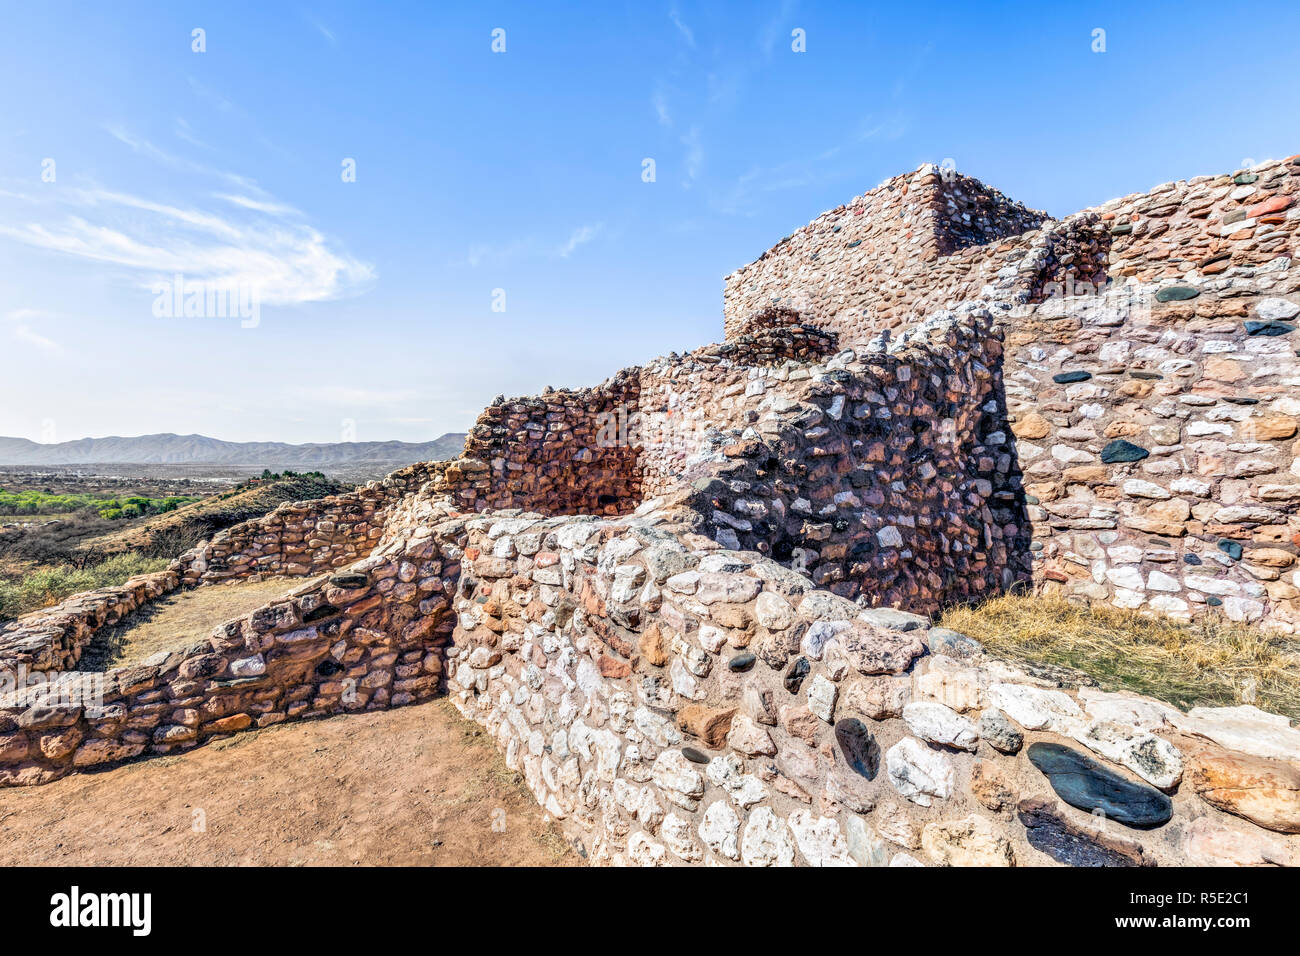 Arizona's Tuzigoot National Monument is the site of one of the largest and best-preserved pueblo dwellings built by the Sinagua people between 1125 an Stock Photo